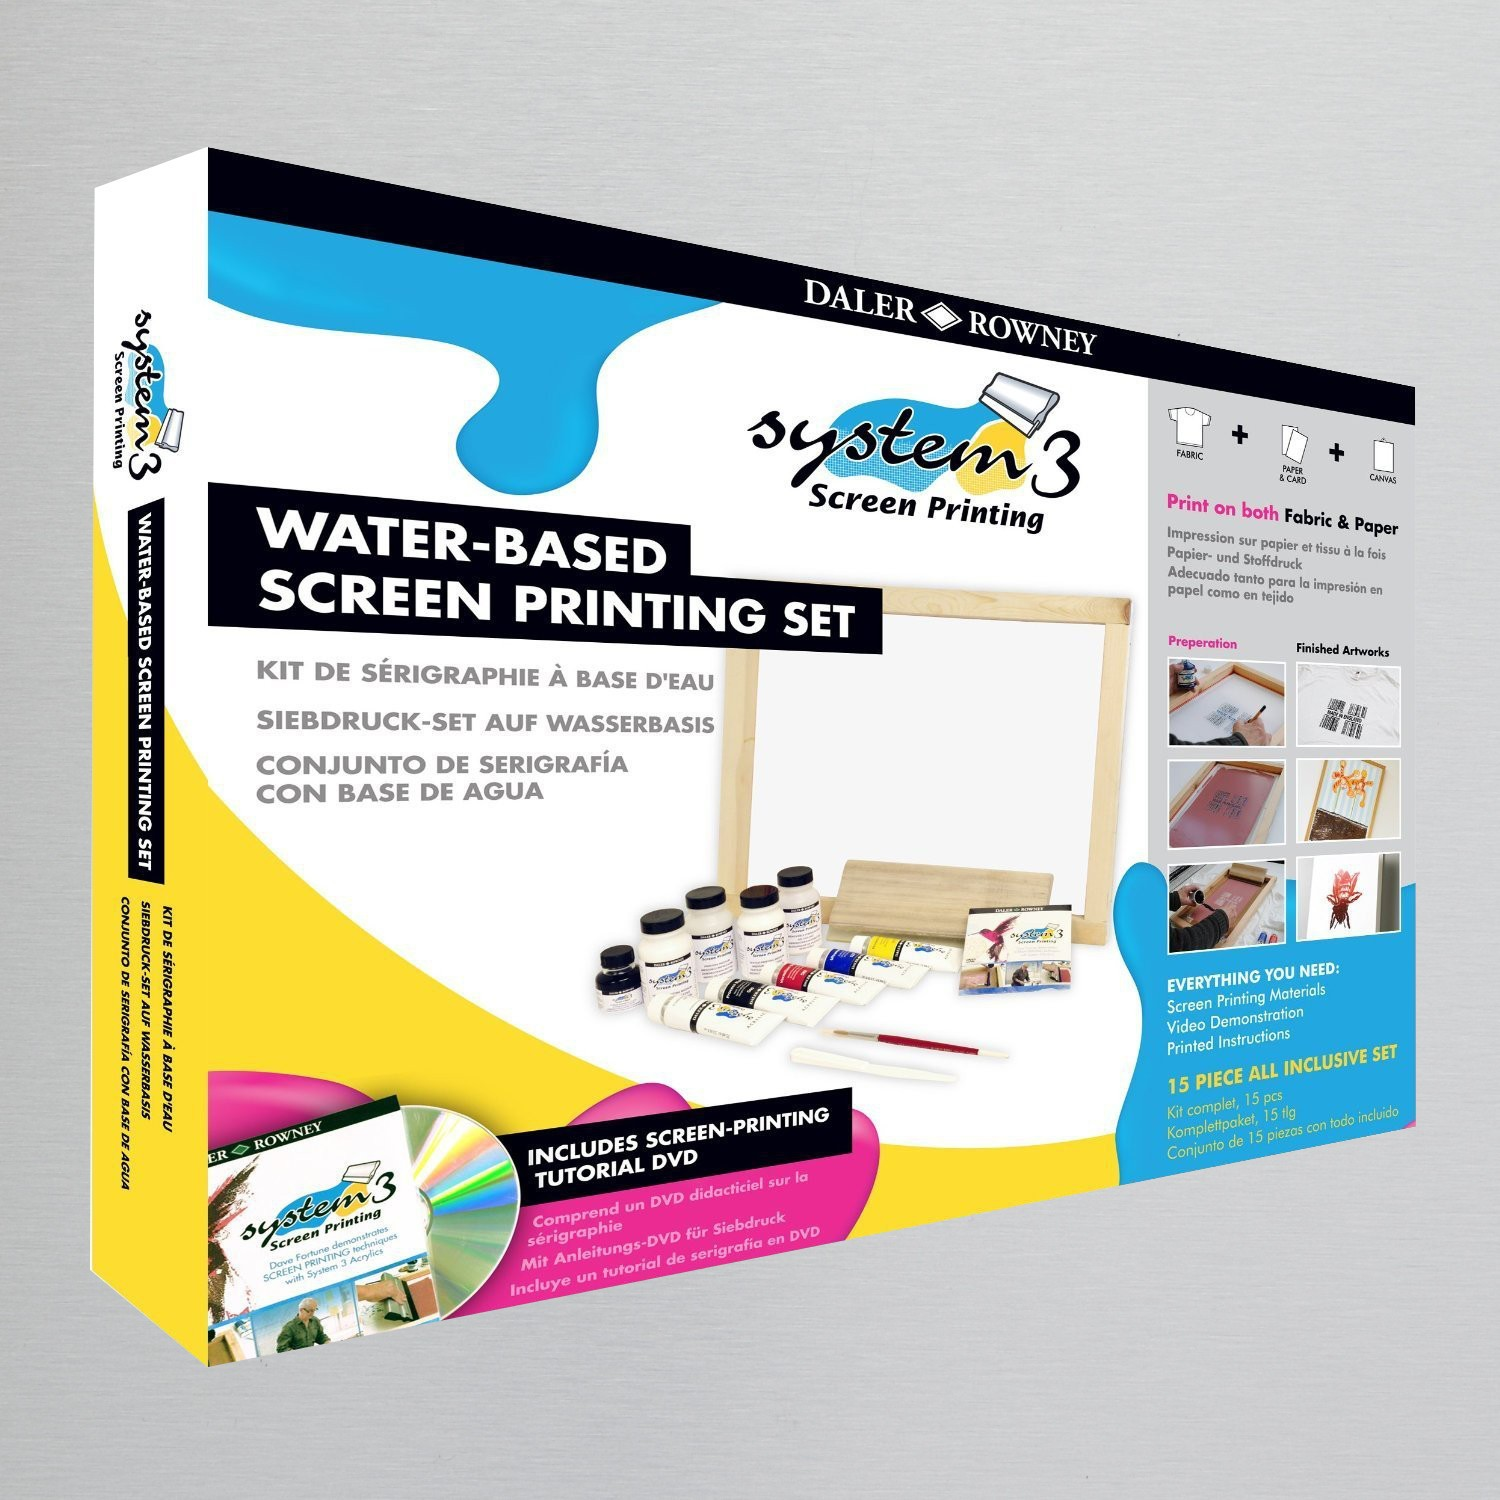 Daler rowney system 3 screen printing set screen for Cricket printing machine craft supplies